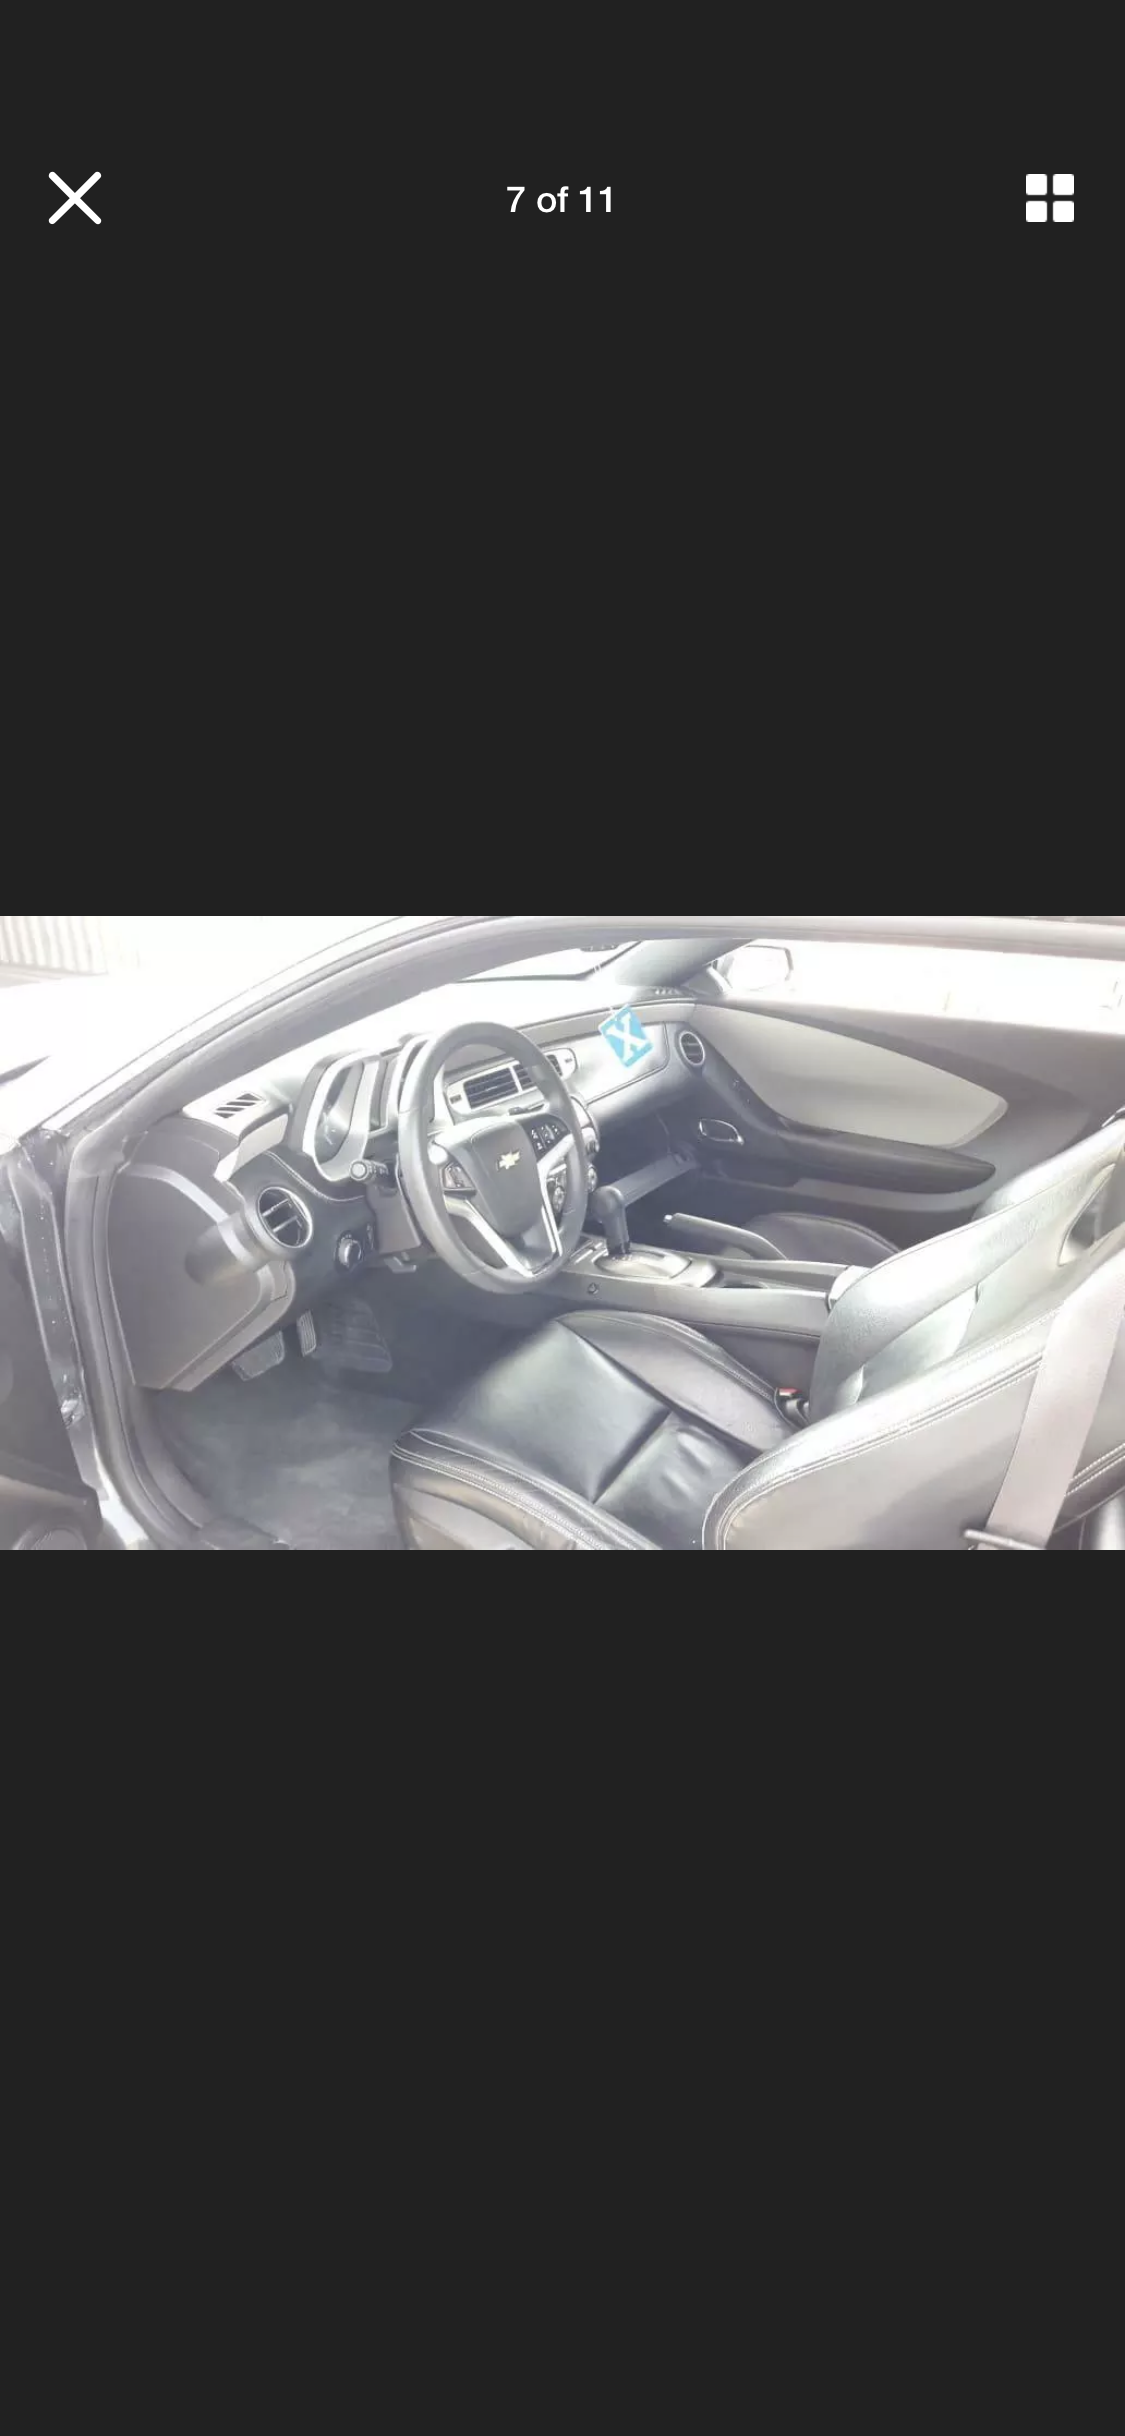 2012 CHEVROLET CAMARO GREY AUTO RS AMERICAN MUSCLE FRESH IMP For Sale (picture 5 of 6)